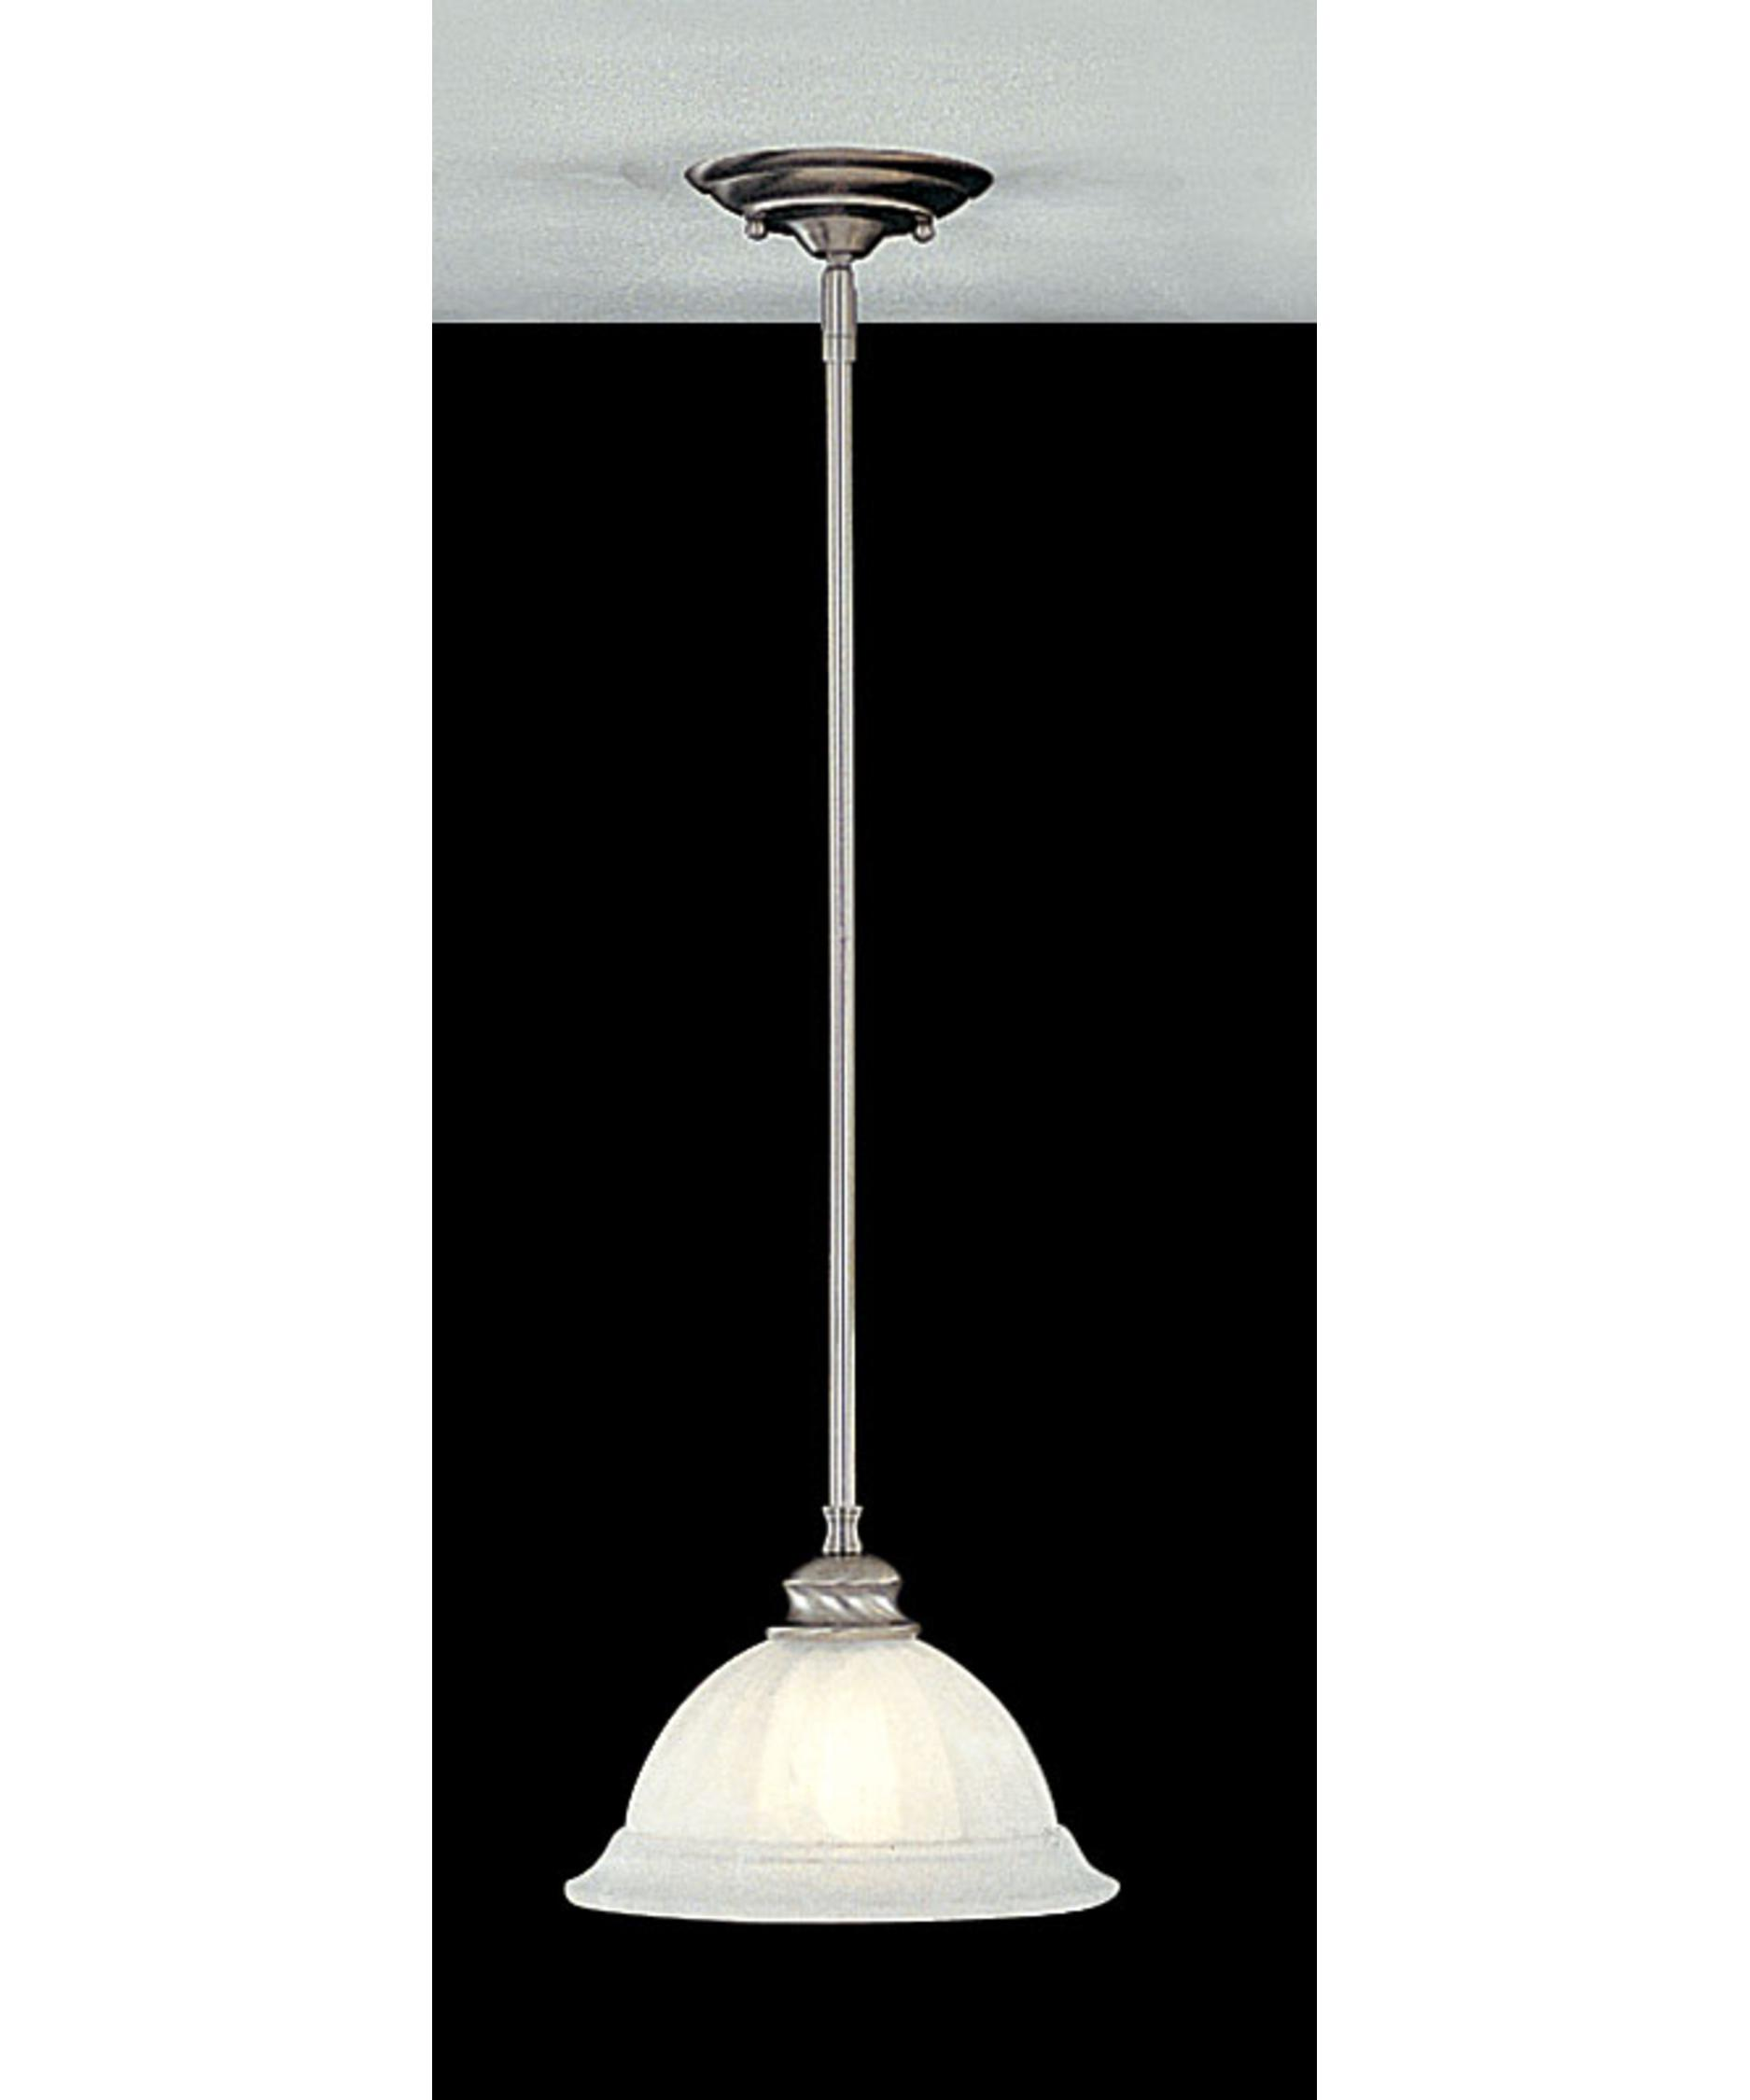 Impressive Murray Feiss P1050 Neo Classic 9 Inch Mini Pendant 1875 x 2250 · 80 kB · jpeg